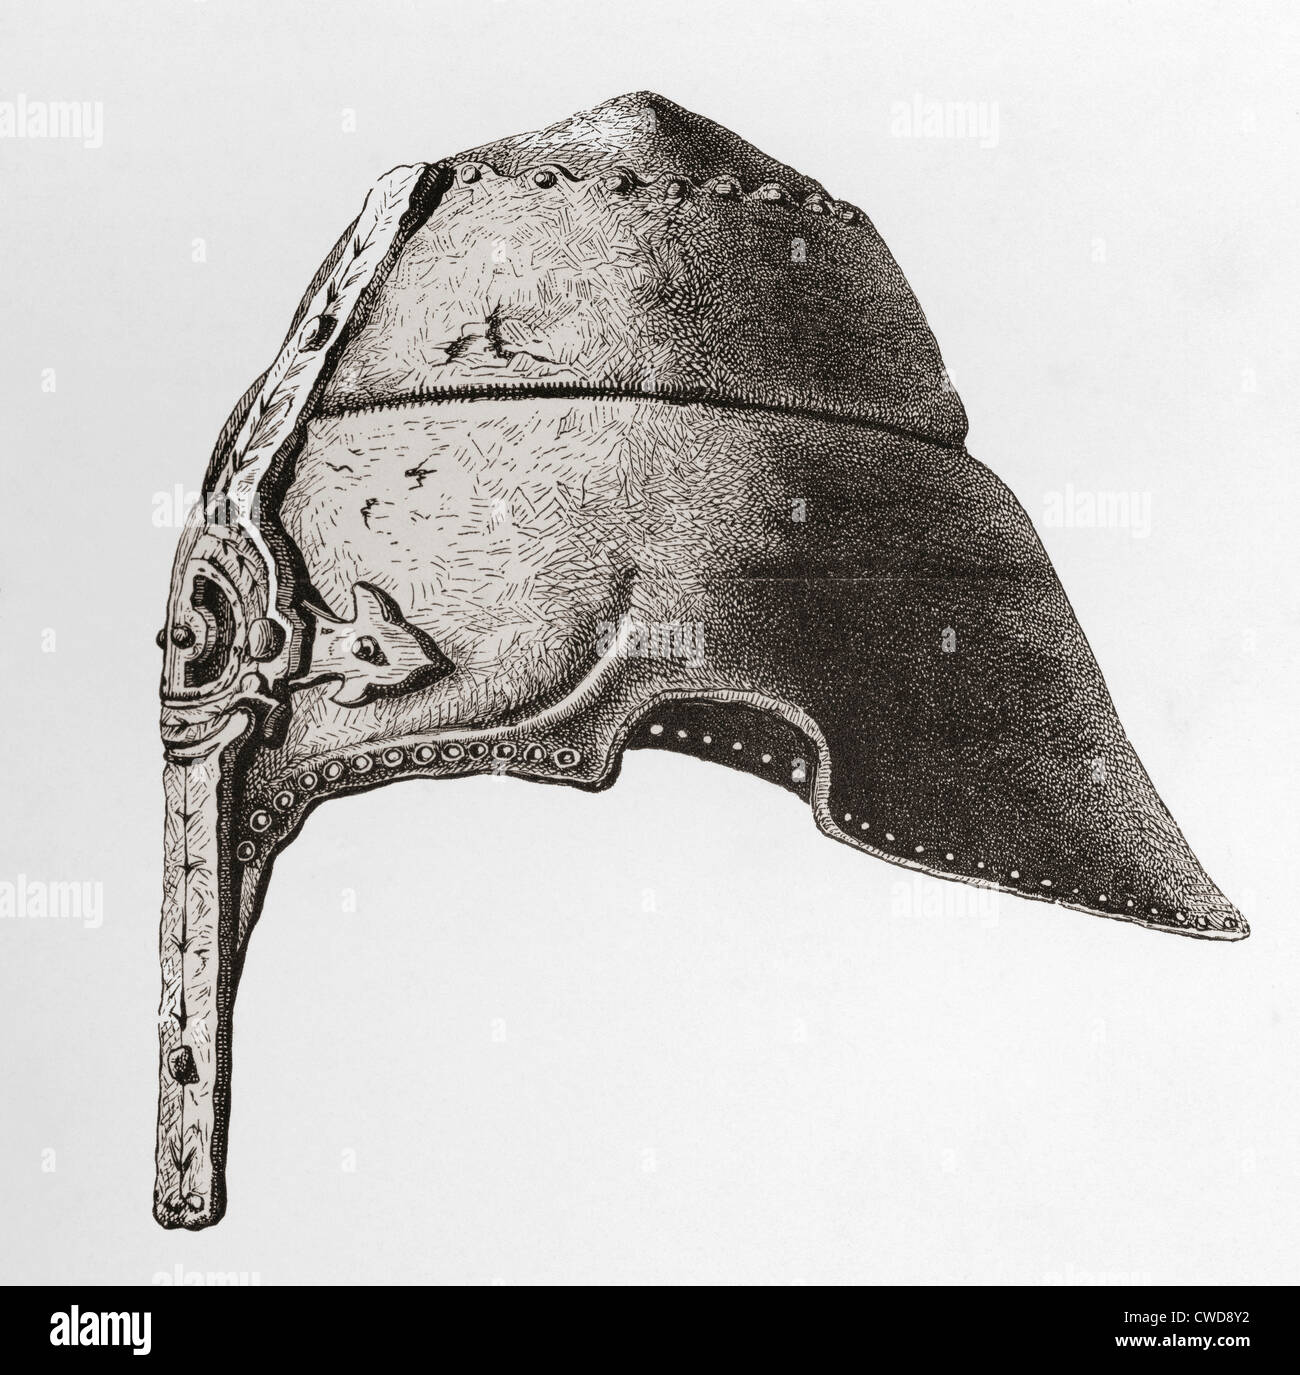 An early twelfth century Nasal Helmet. From The British Army: It's Origins, Progress and Equipment, published 1868. Stock Photo